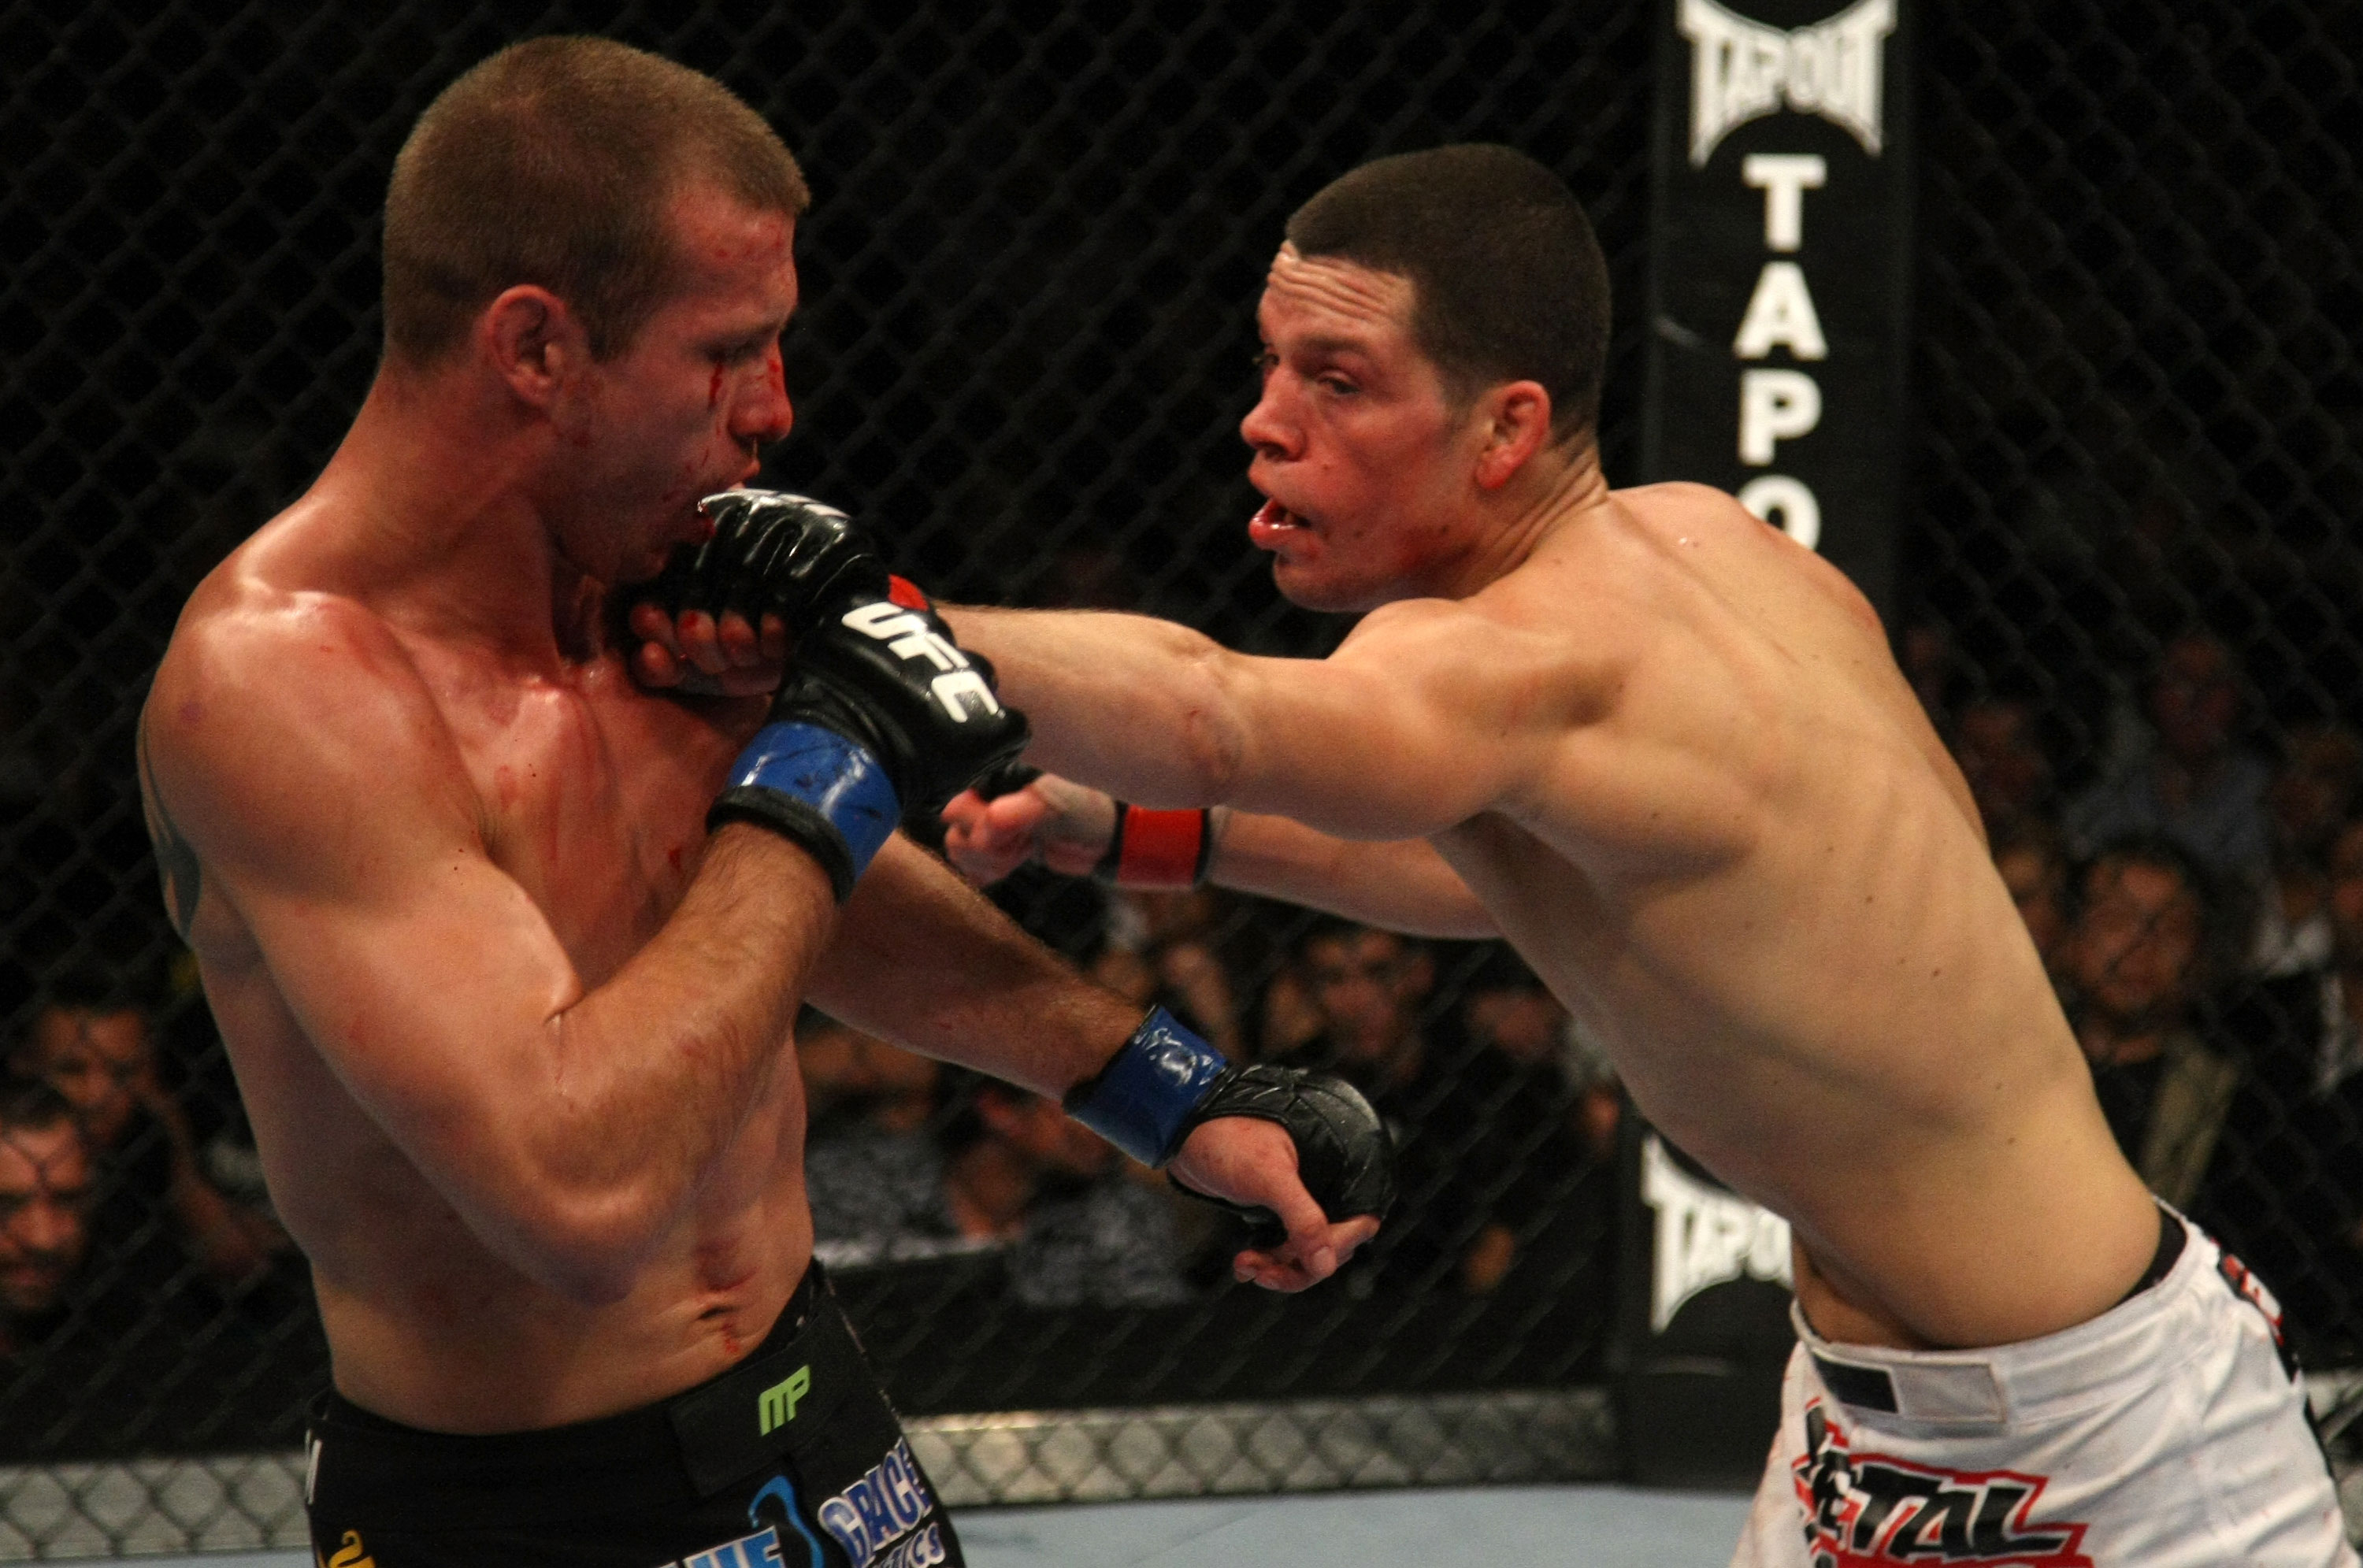 Donald Cerrone (left) and Nate Diaz (right) exchange blows during the UFC 141 event at the MGM Grand Garden Arena on December 30, 2011 in Las Vegas, Nevada. (Photo by Donald Miralle/Zuffa LLC)